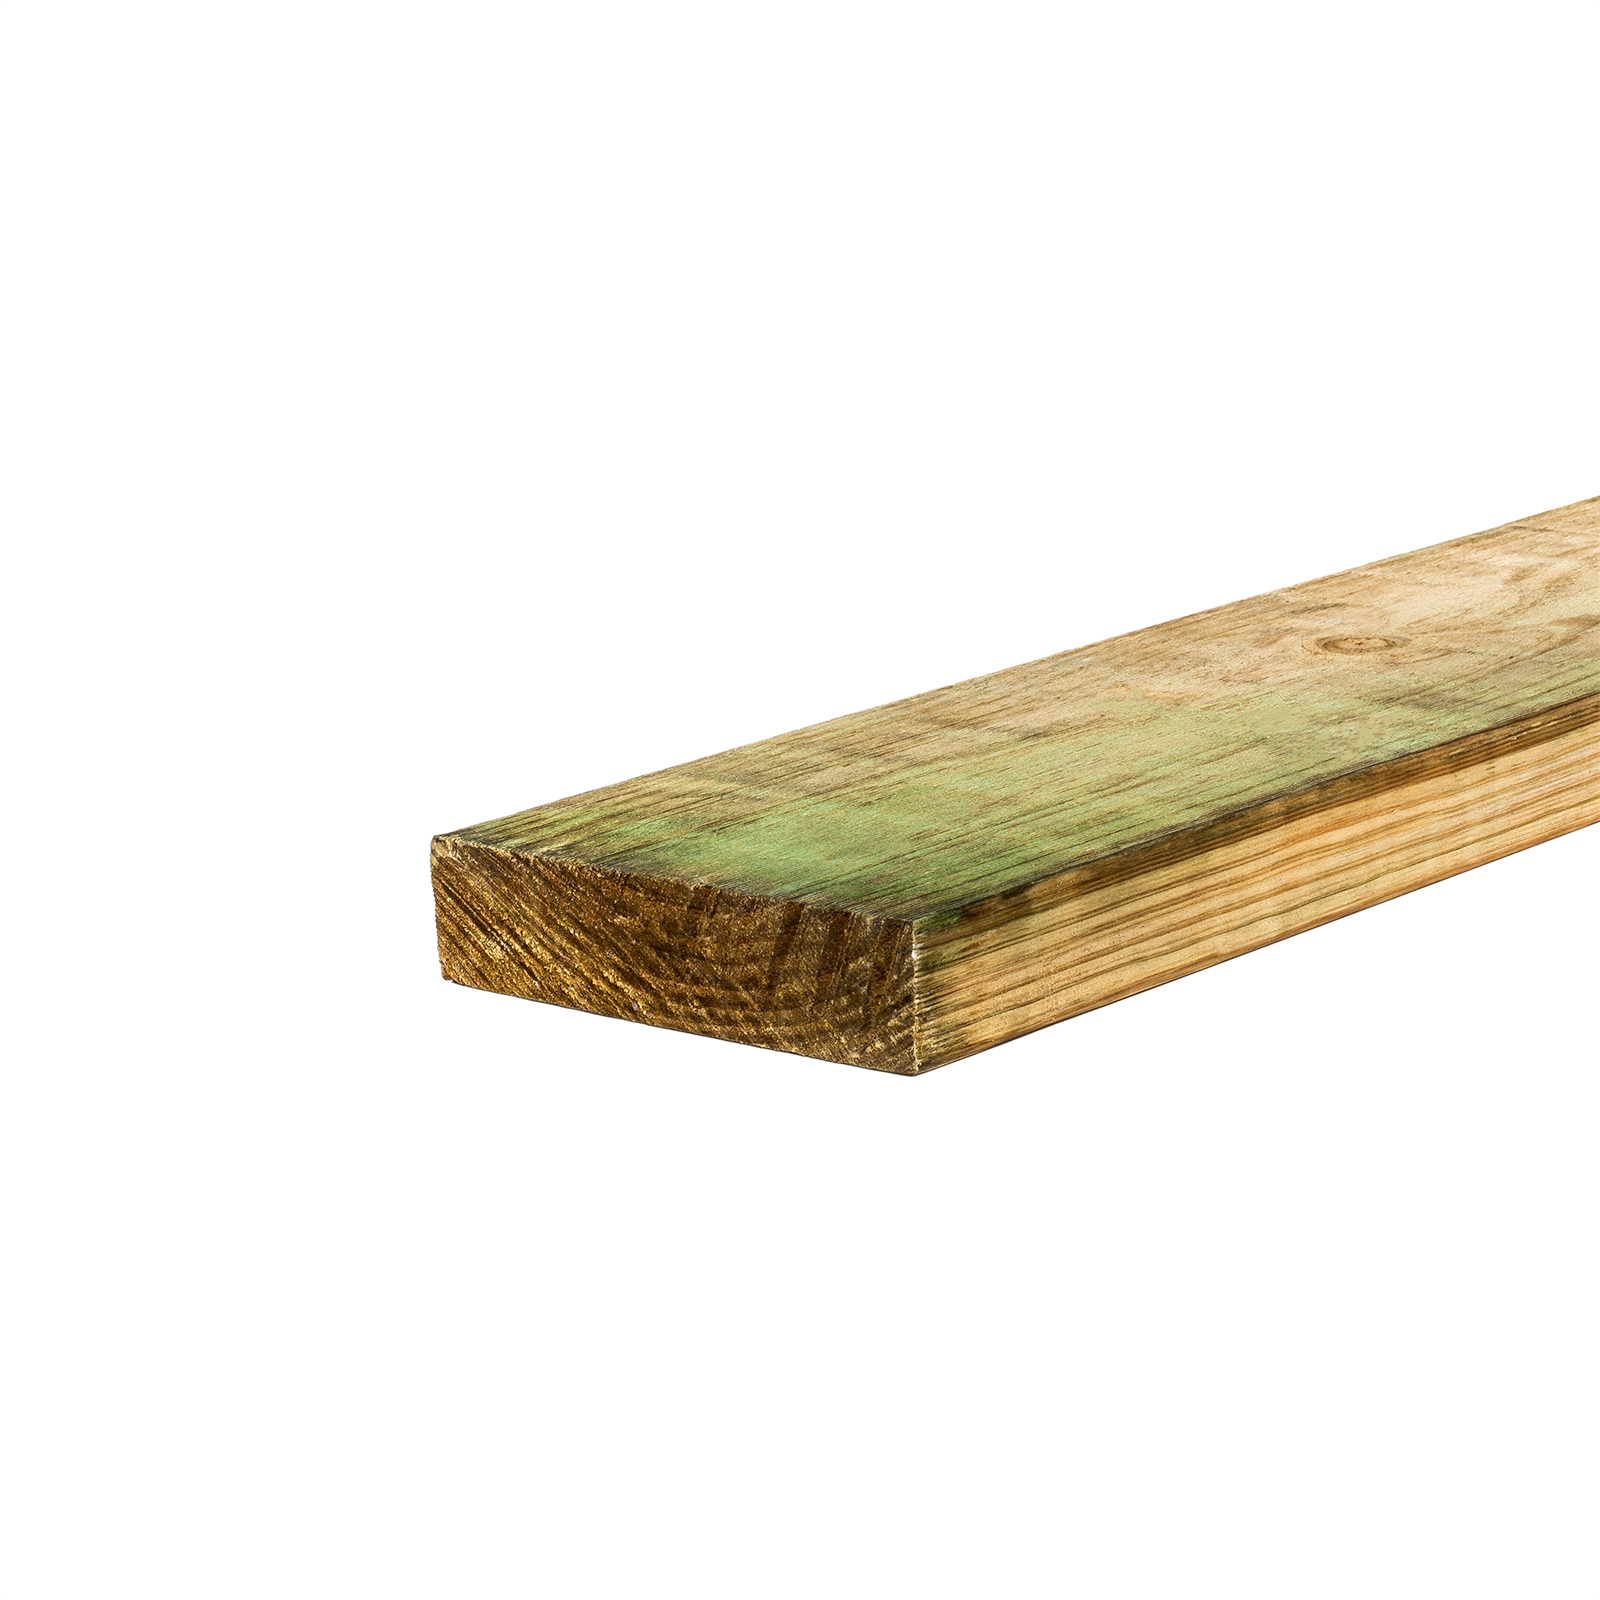 Treated Pine Outdoor Timber Framing 190 x 45mm